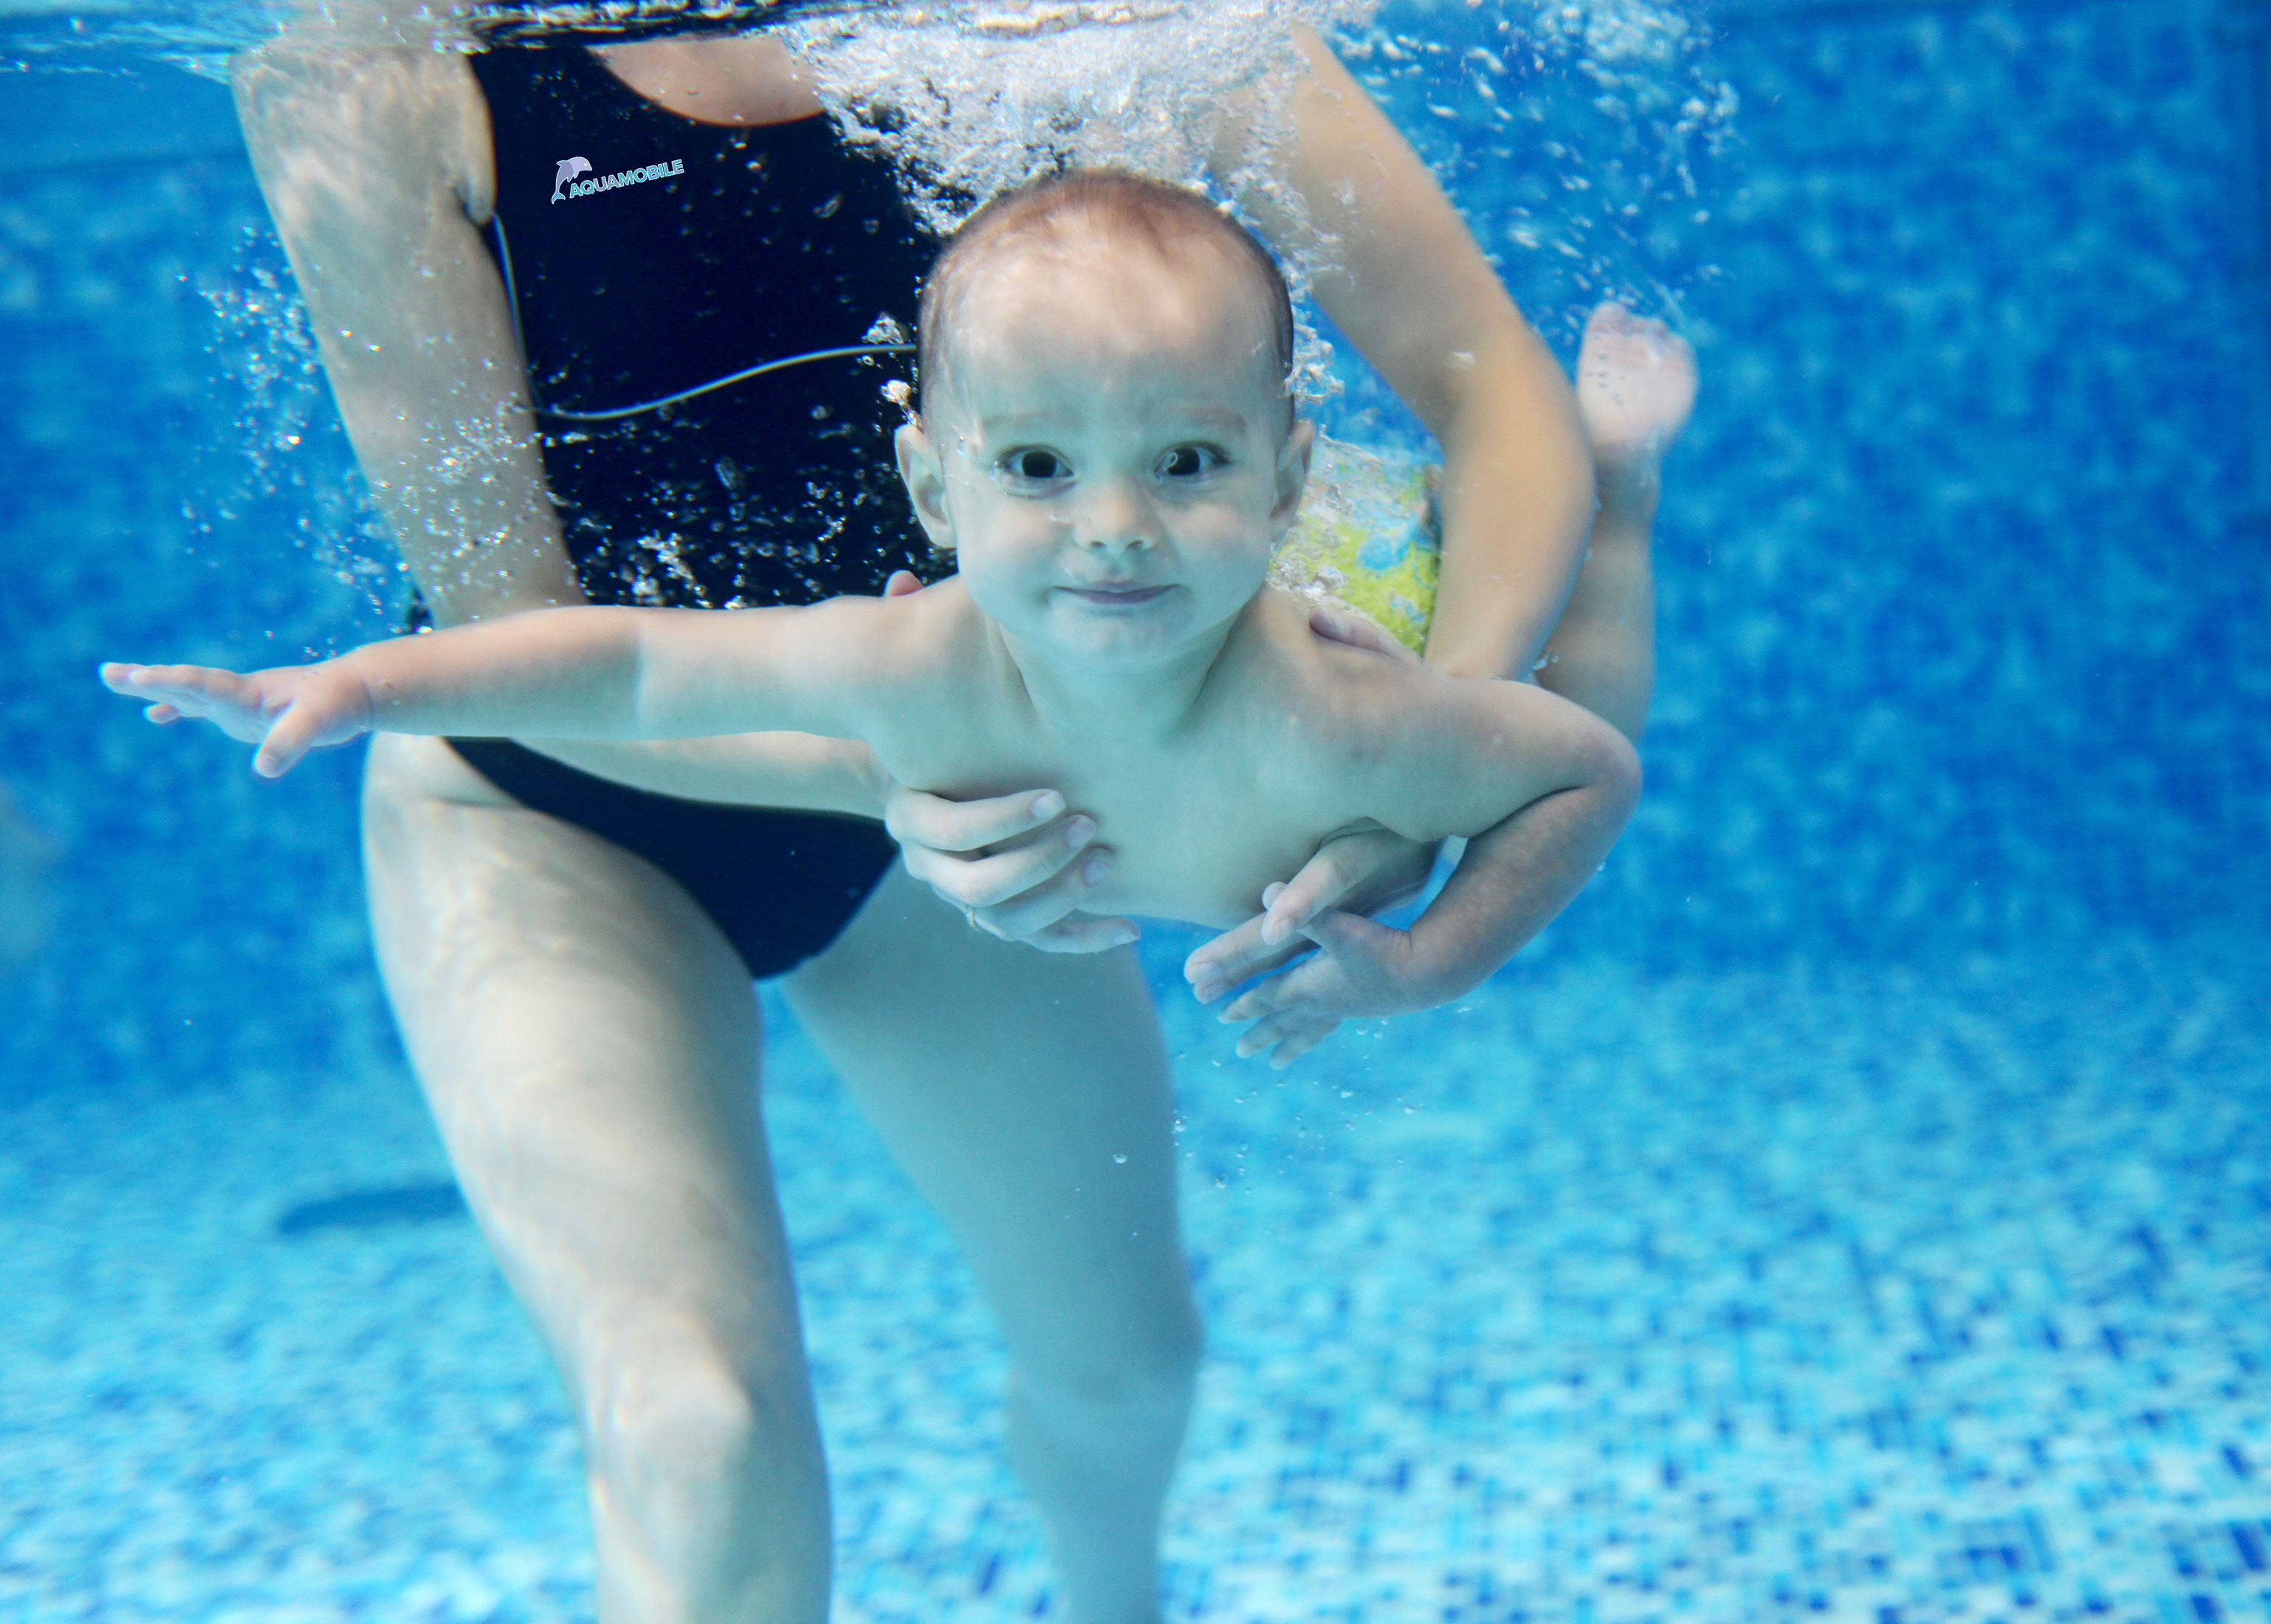 Is it safe to dunk a baby under water? AquaMobile Swim Instructor Teaches Baby to Swim